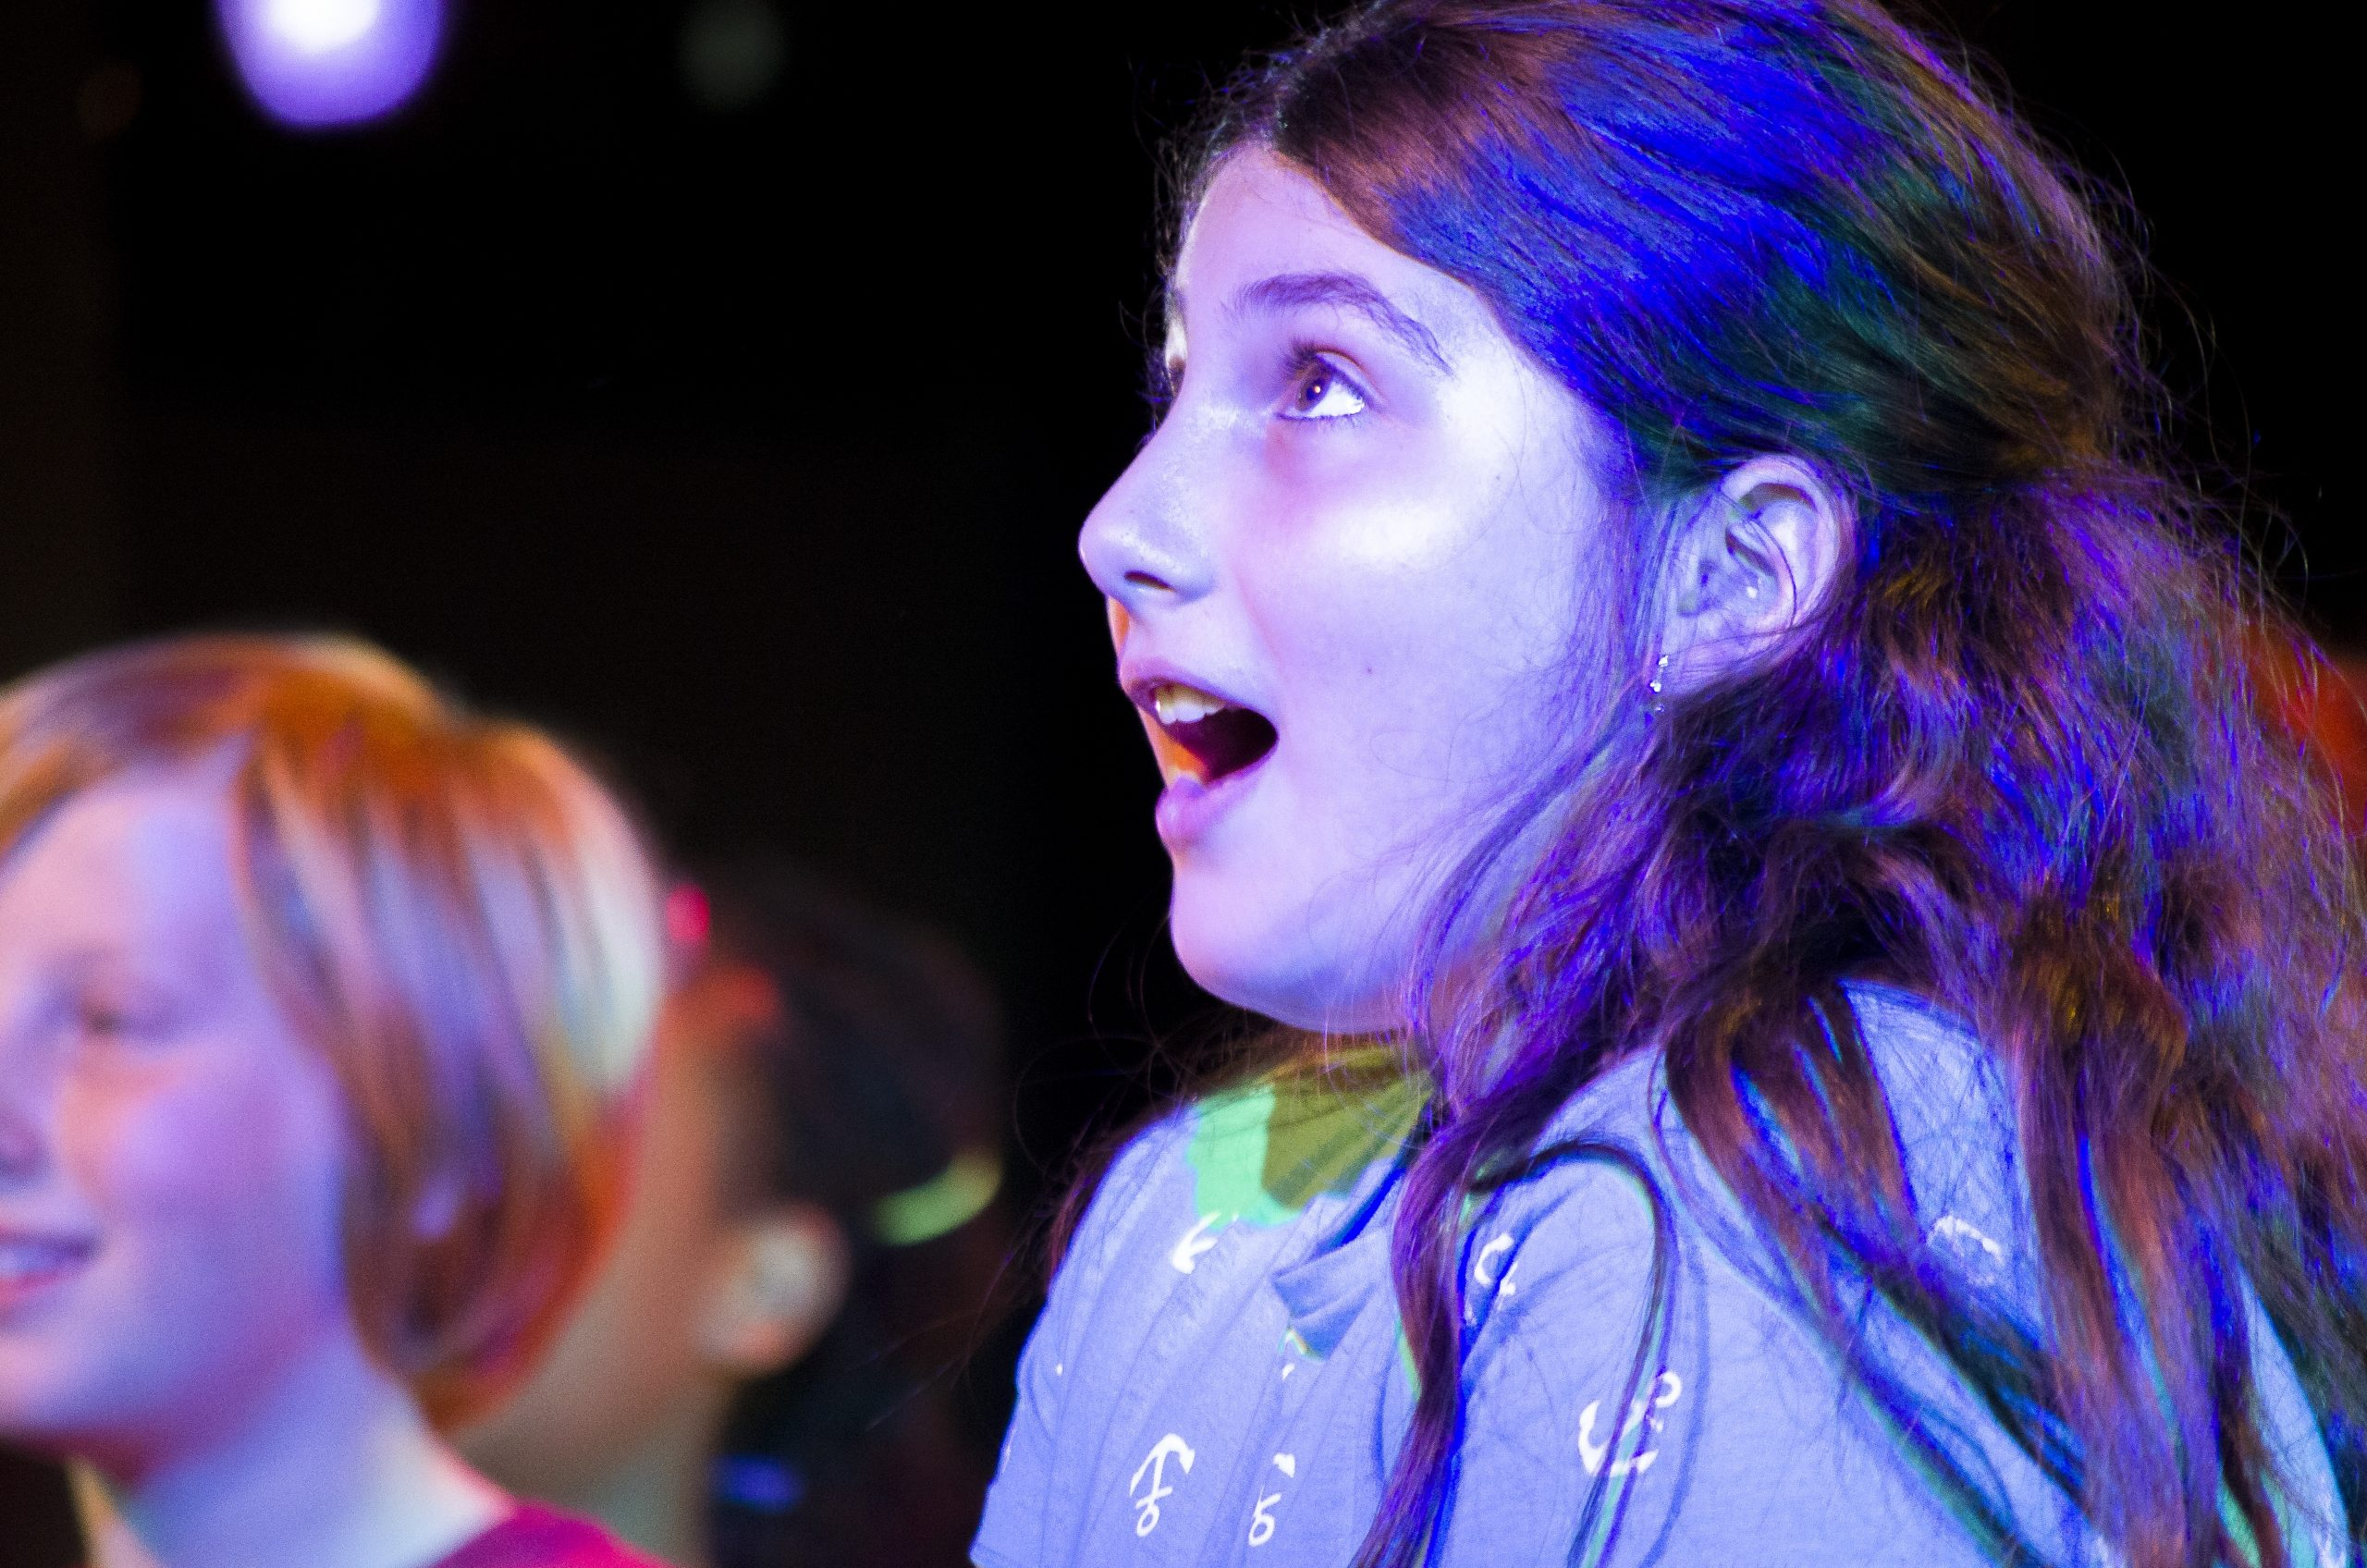 A young girl taking part in Polkas Playhouse in 2018